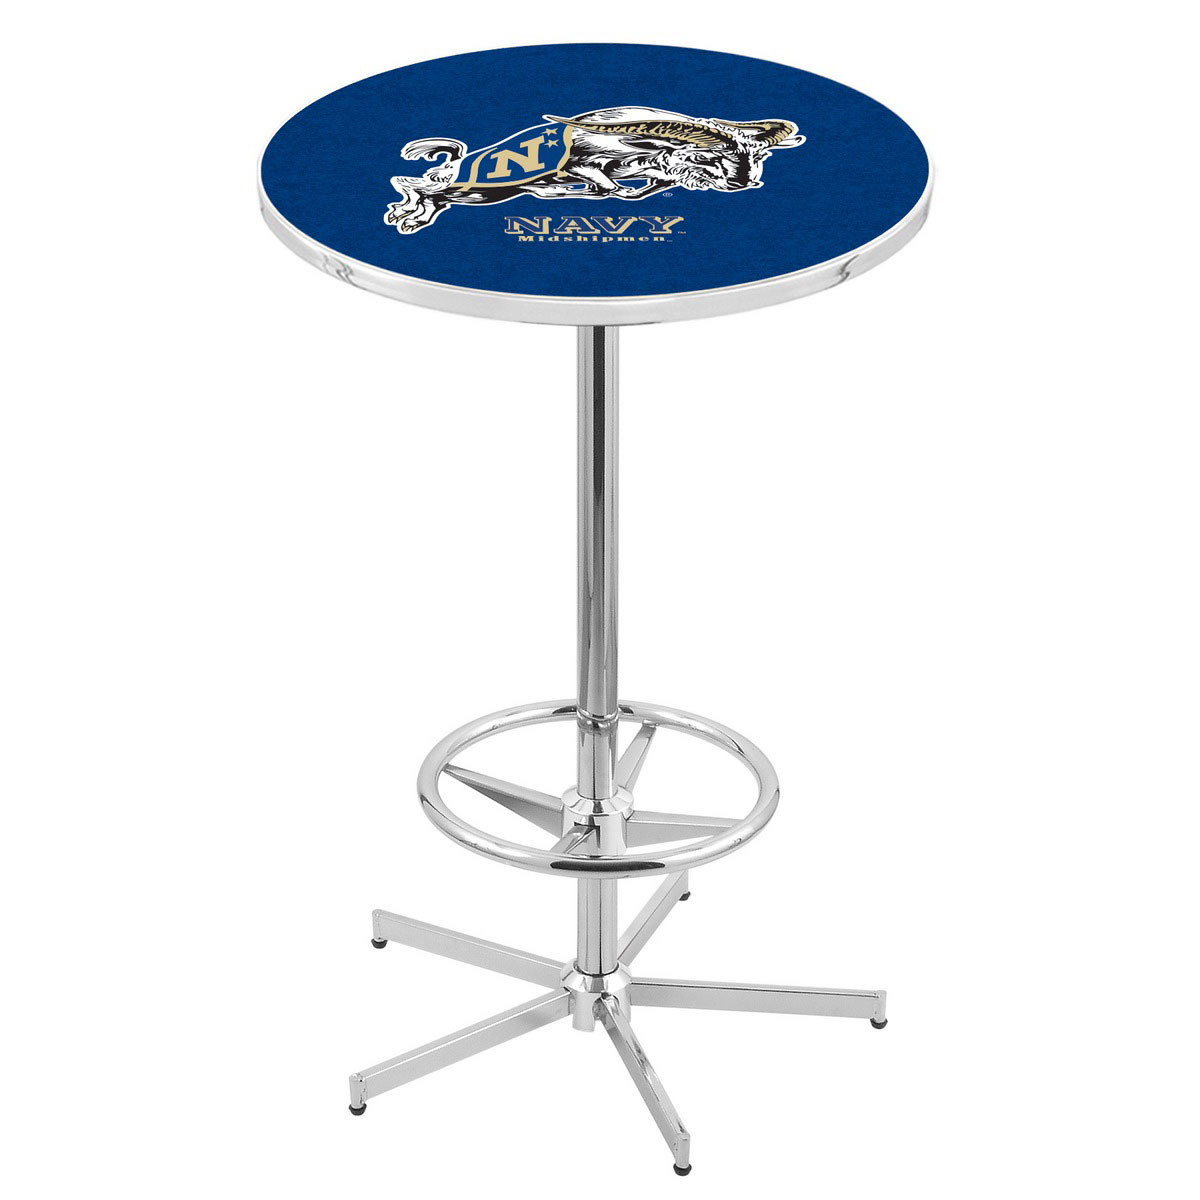 User friendly Chrome Us Naval Academy Pub Table Product Photo